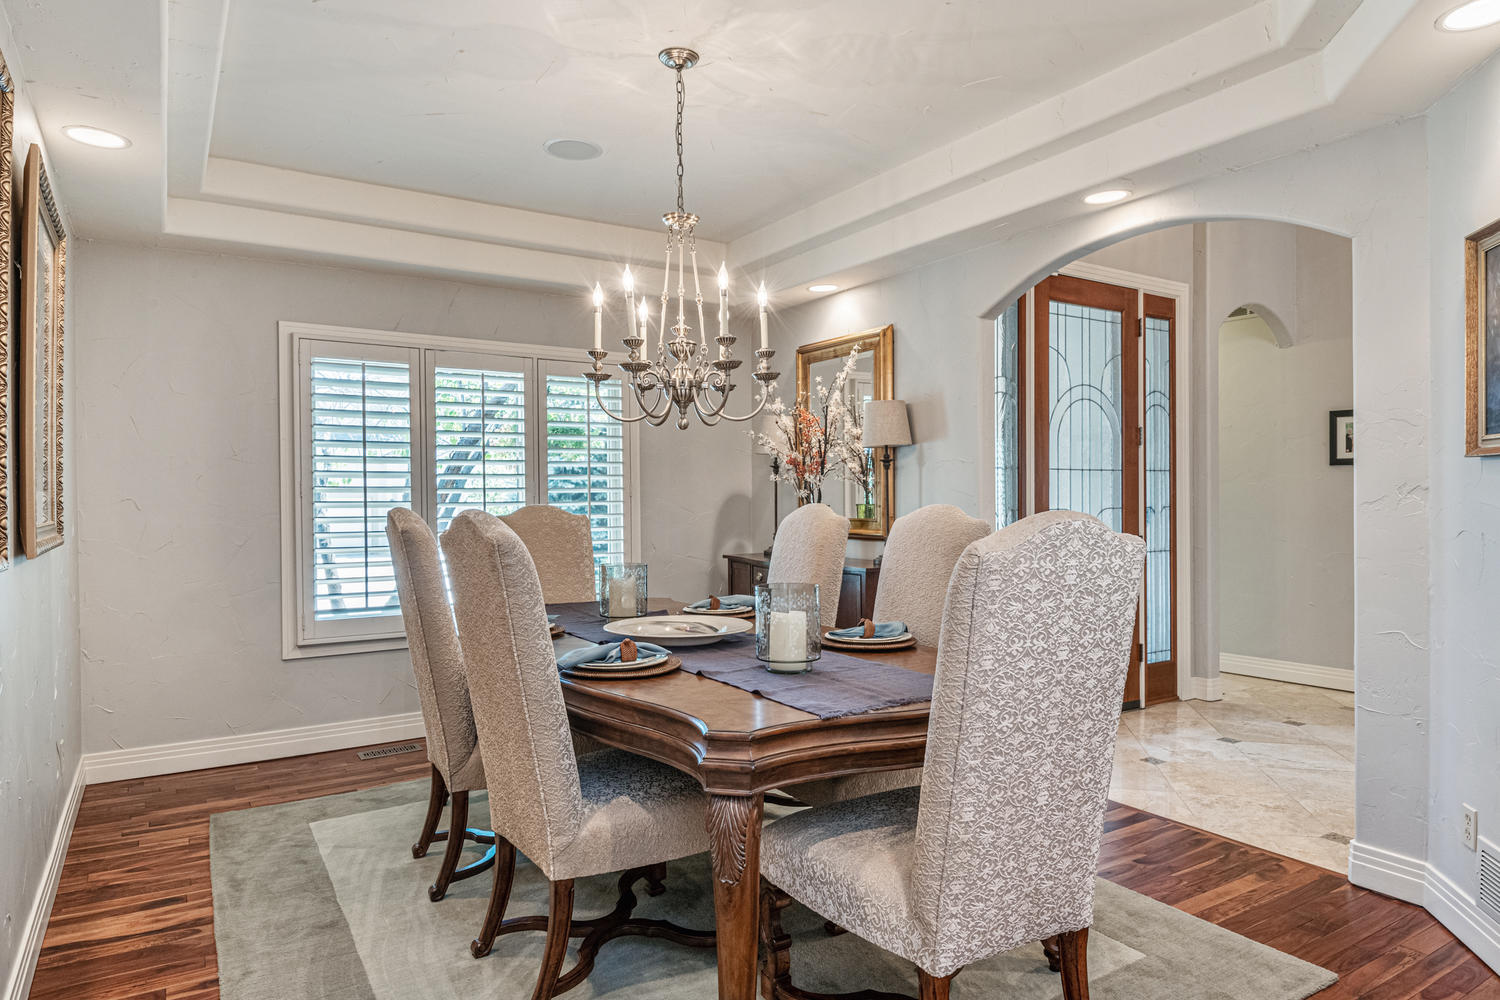 Spacious Open Formal Dining Room with Tray Ceiling